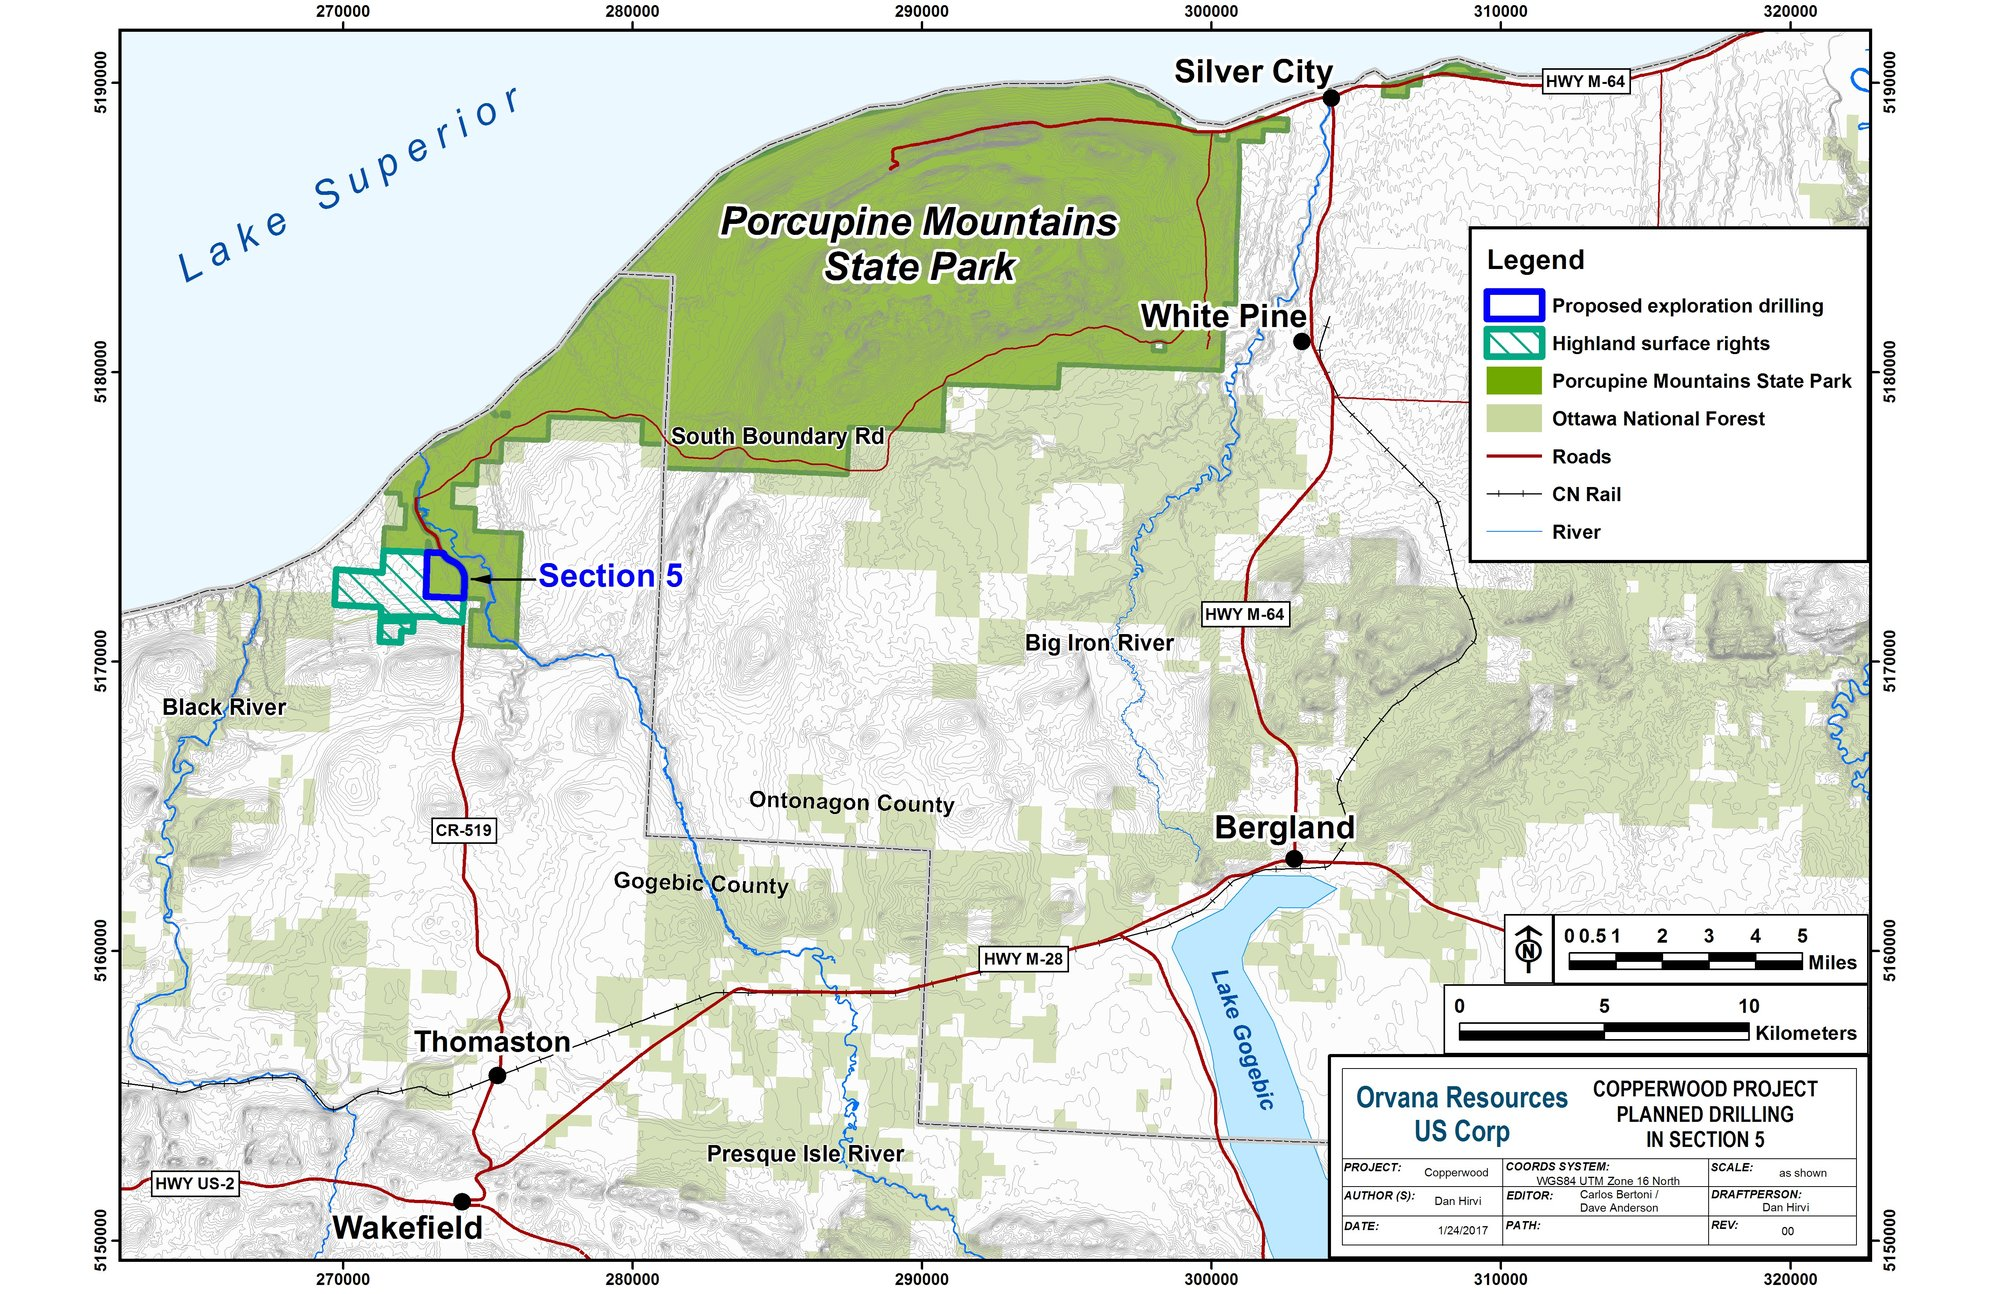 A map shows land ownership and the location of the exploratory drilling at Porcupine Mountains Wilderness State Park.